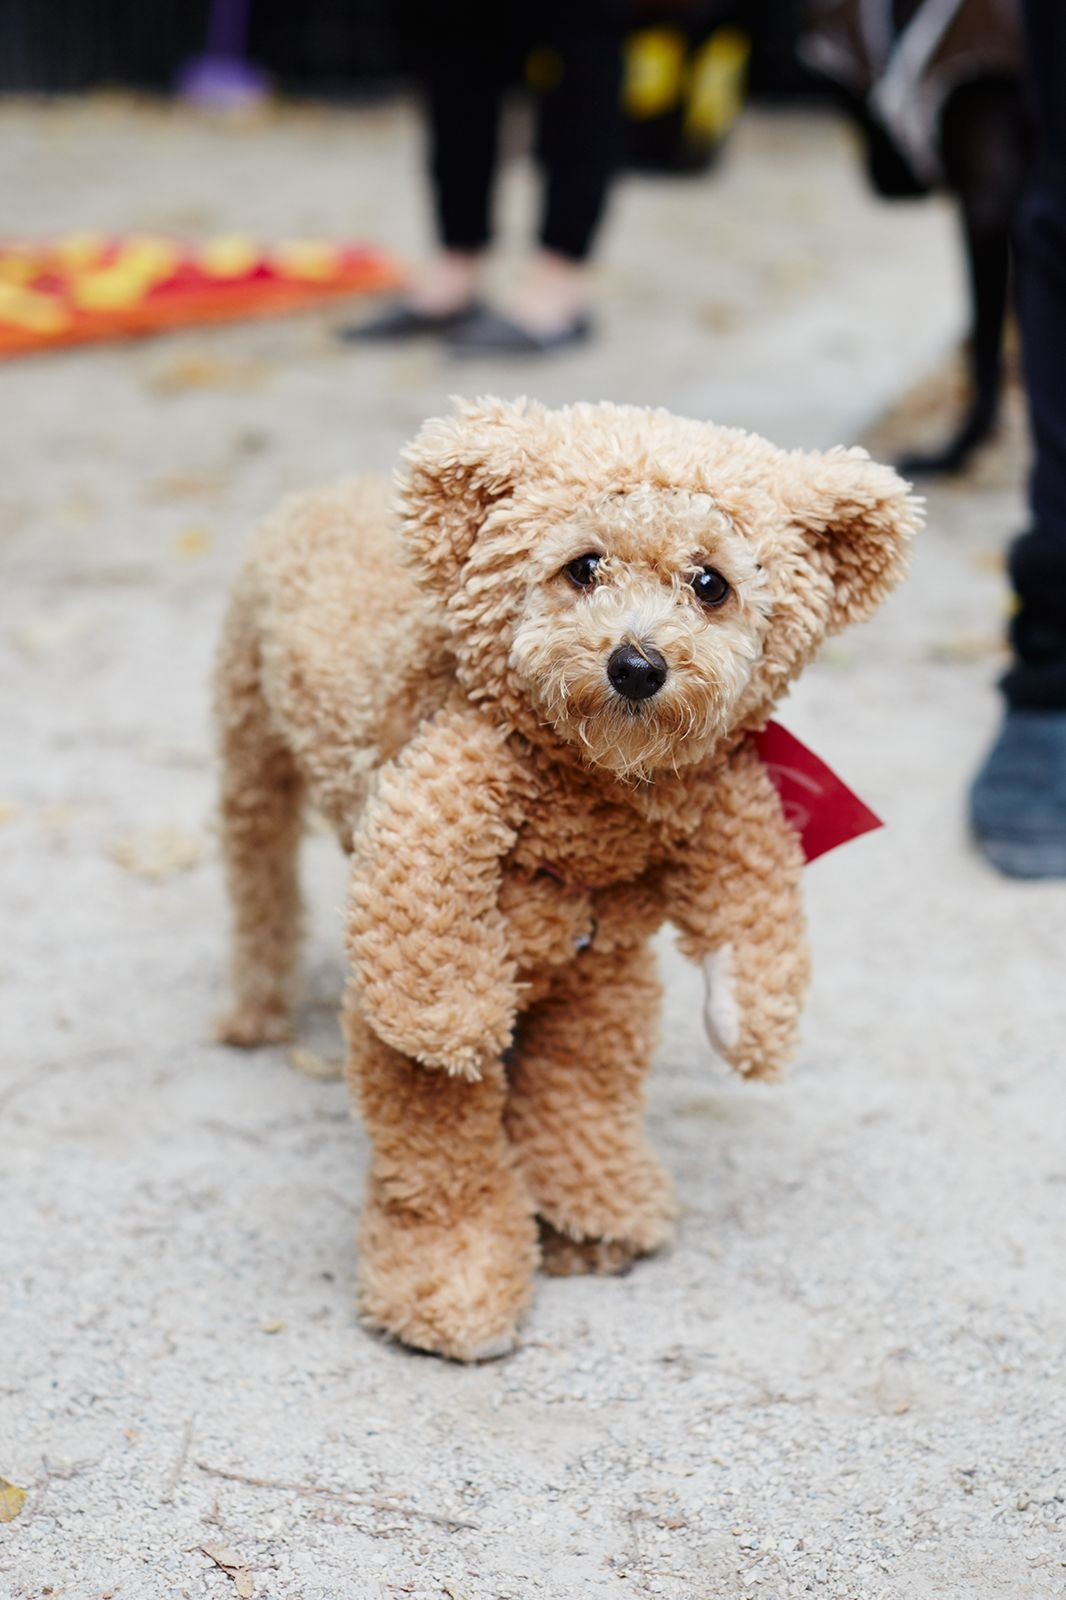 The 40+ Best Dog Costumes EVER  #refinery29  http://www.refinery29.com/2015/10/96371/new-york-dog-parade-pictures#slide-18  If you've already got button eyes, a teddy bear costume is a no-brainer....